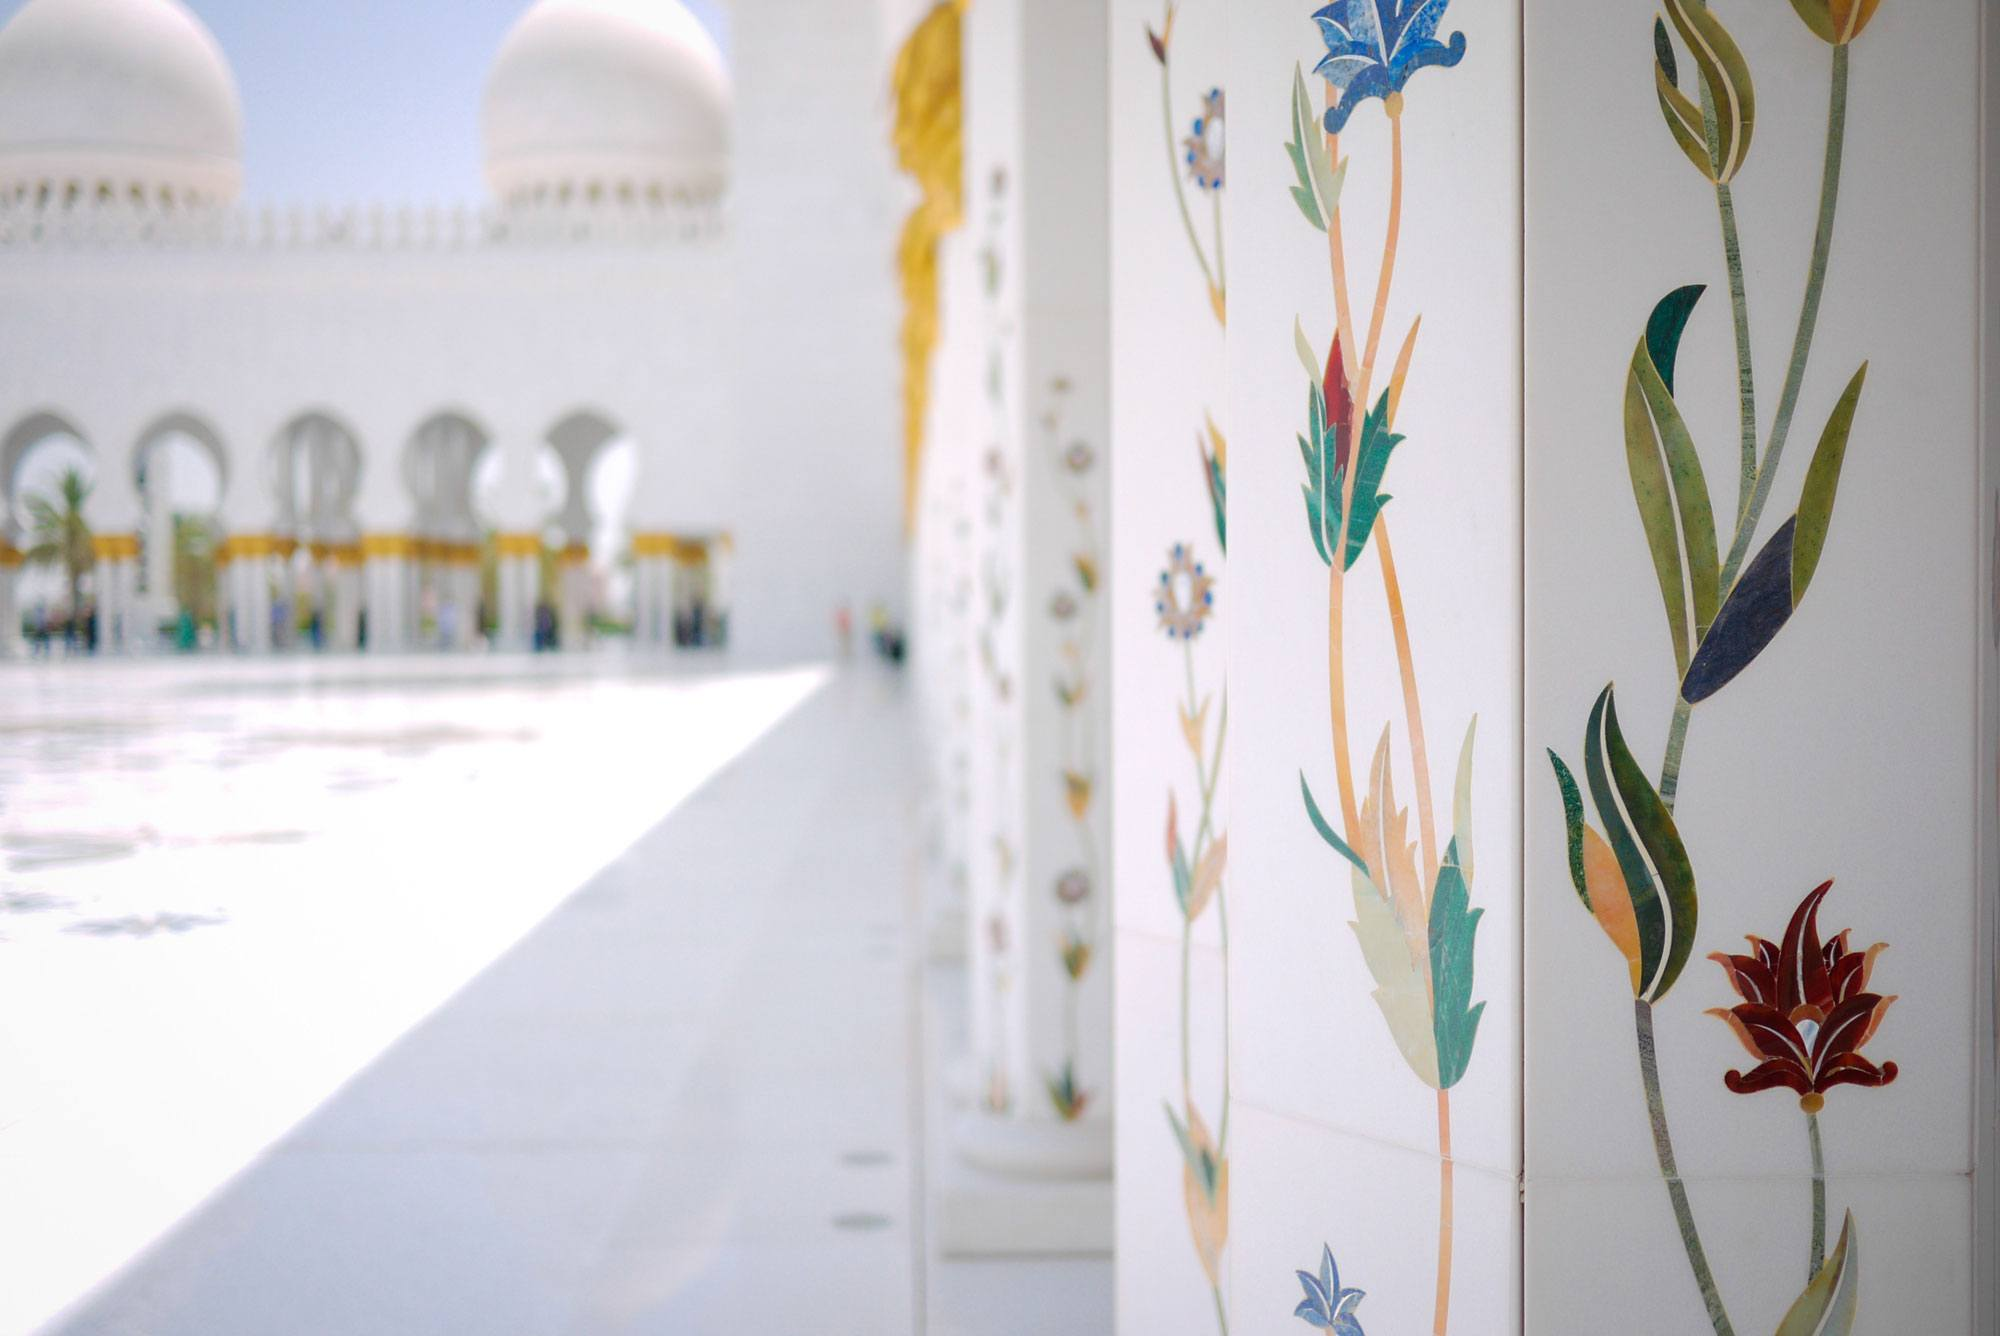 Sheikh-Zayed-Grand-Mosque_-Abu-Dhabi